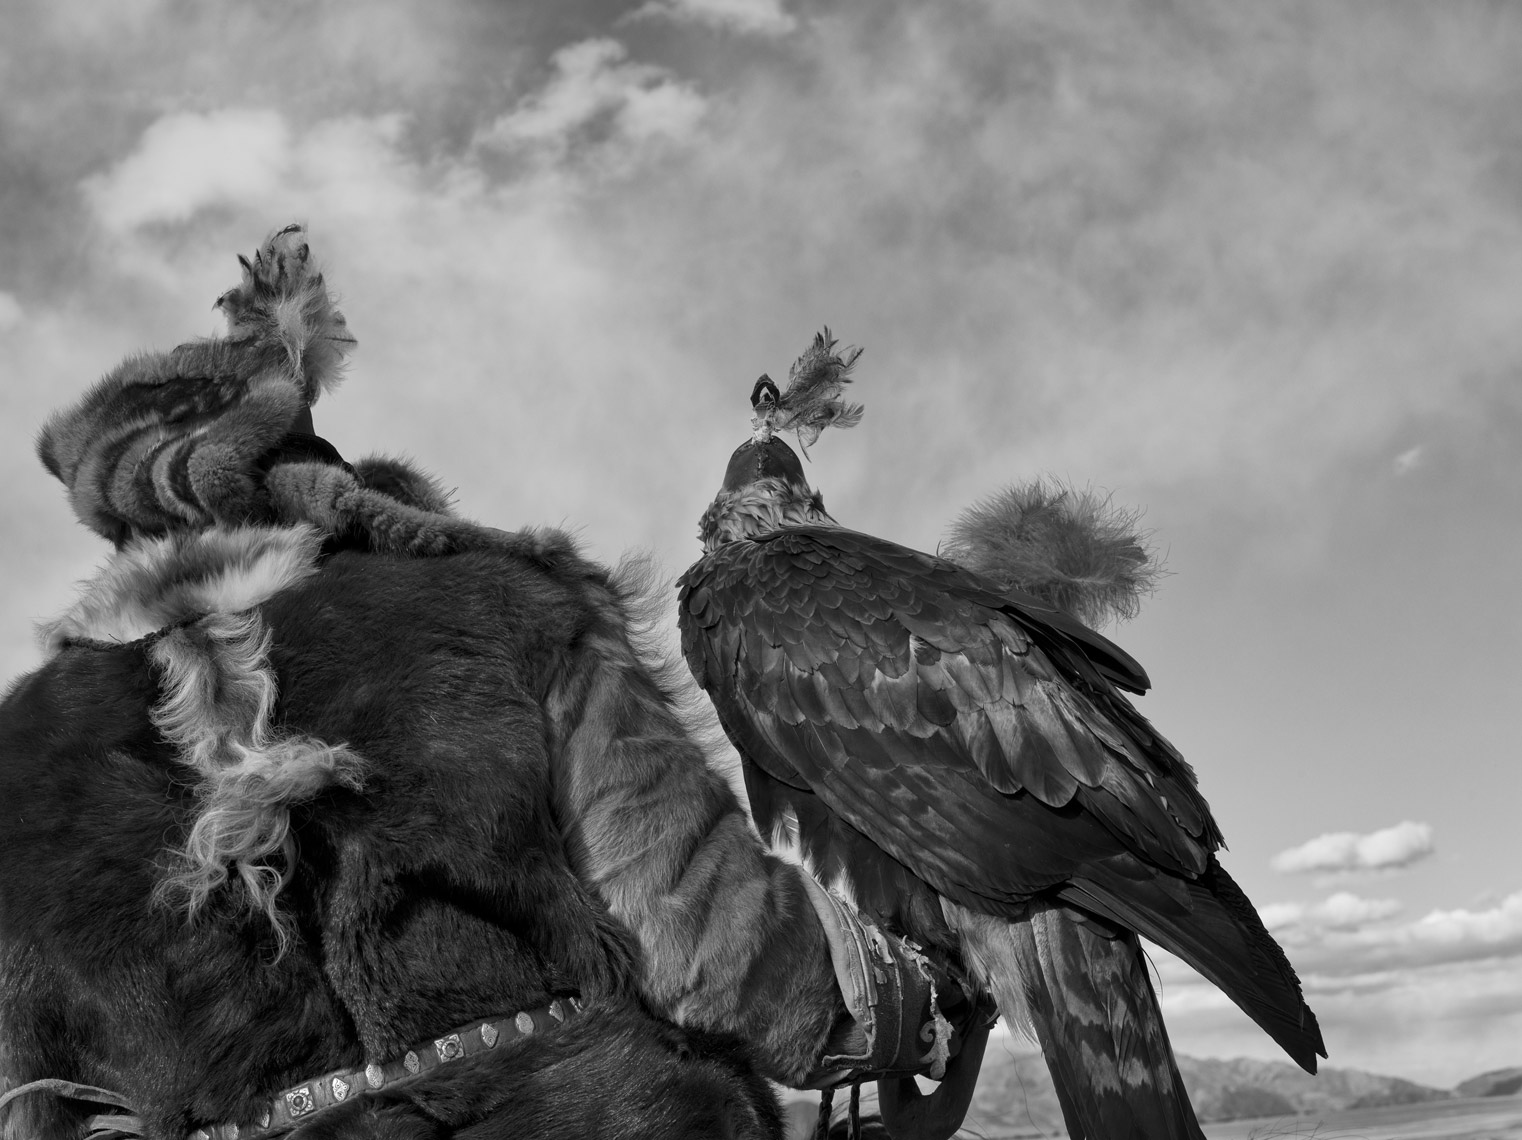 Hunting-with-Eagles-Final-Edit-TIFF11